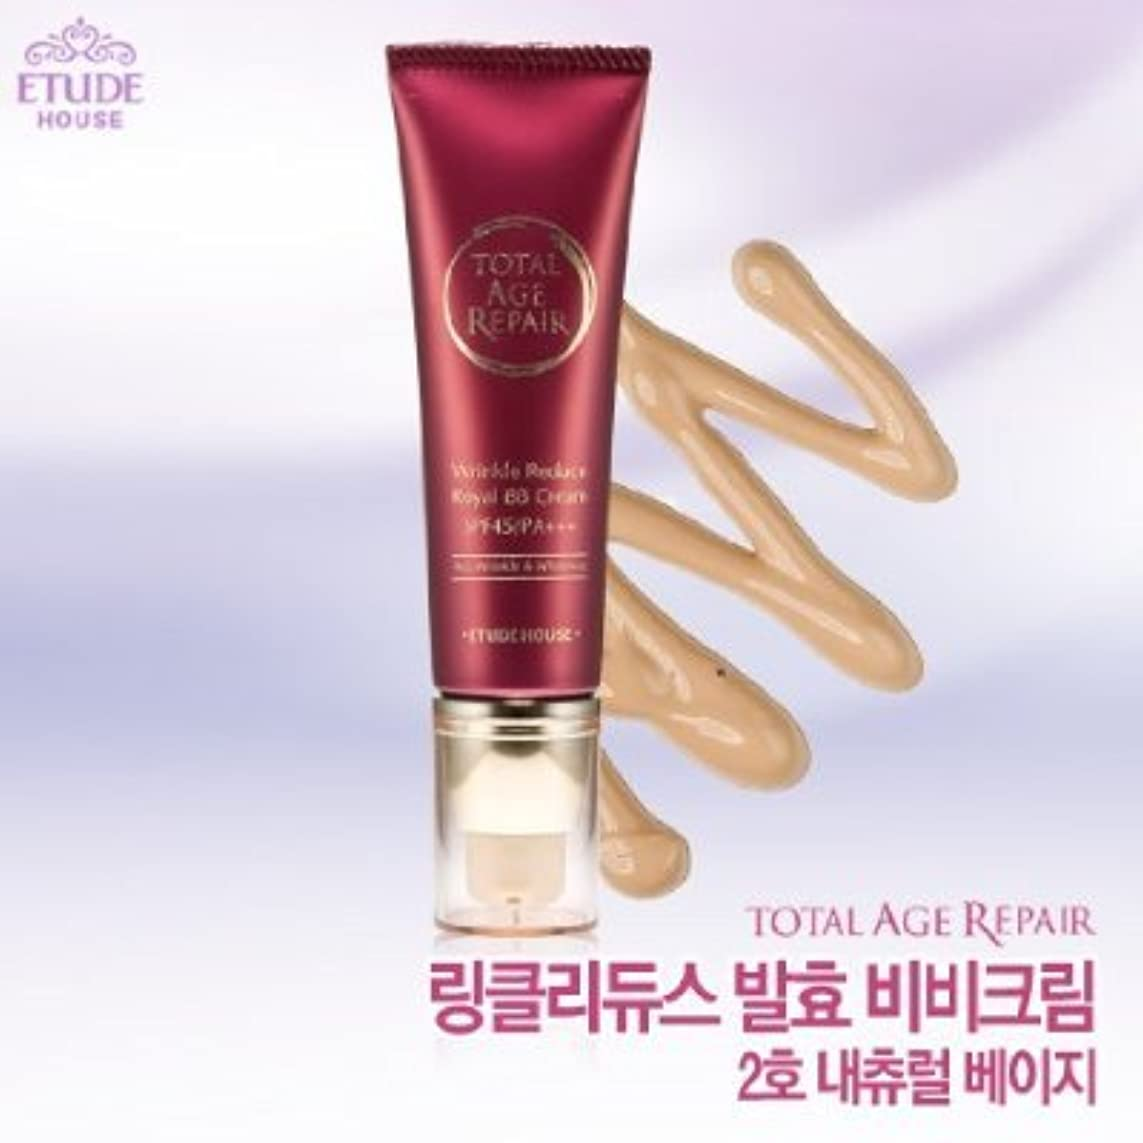 エゴイズム虎タワーEtude House Total Age Repair Wrinkle Reduce Royal BB Cream (SPF45/PA++) #2 Natural Beige